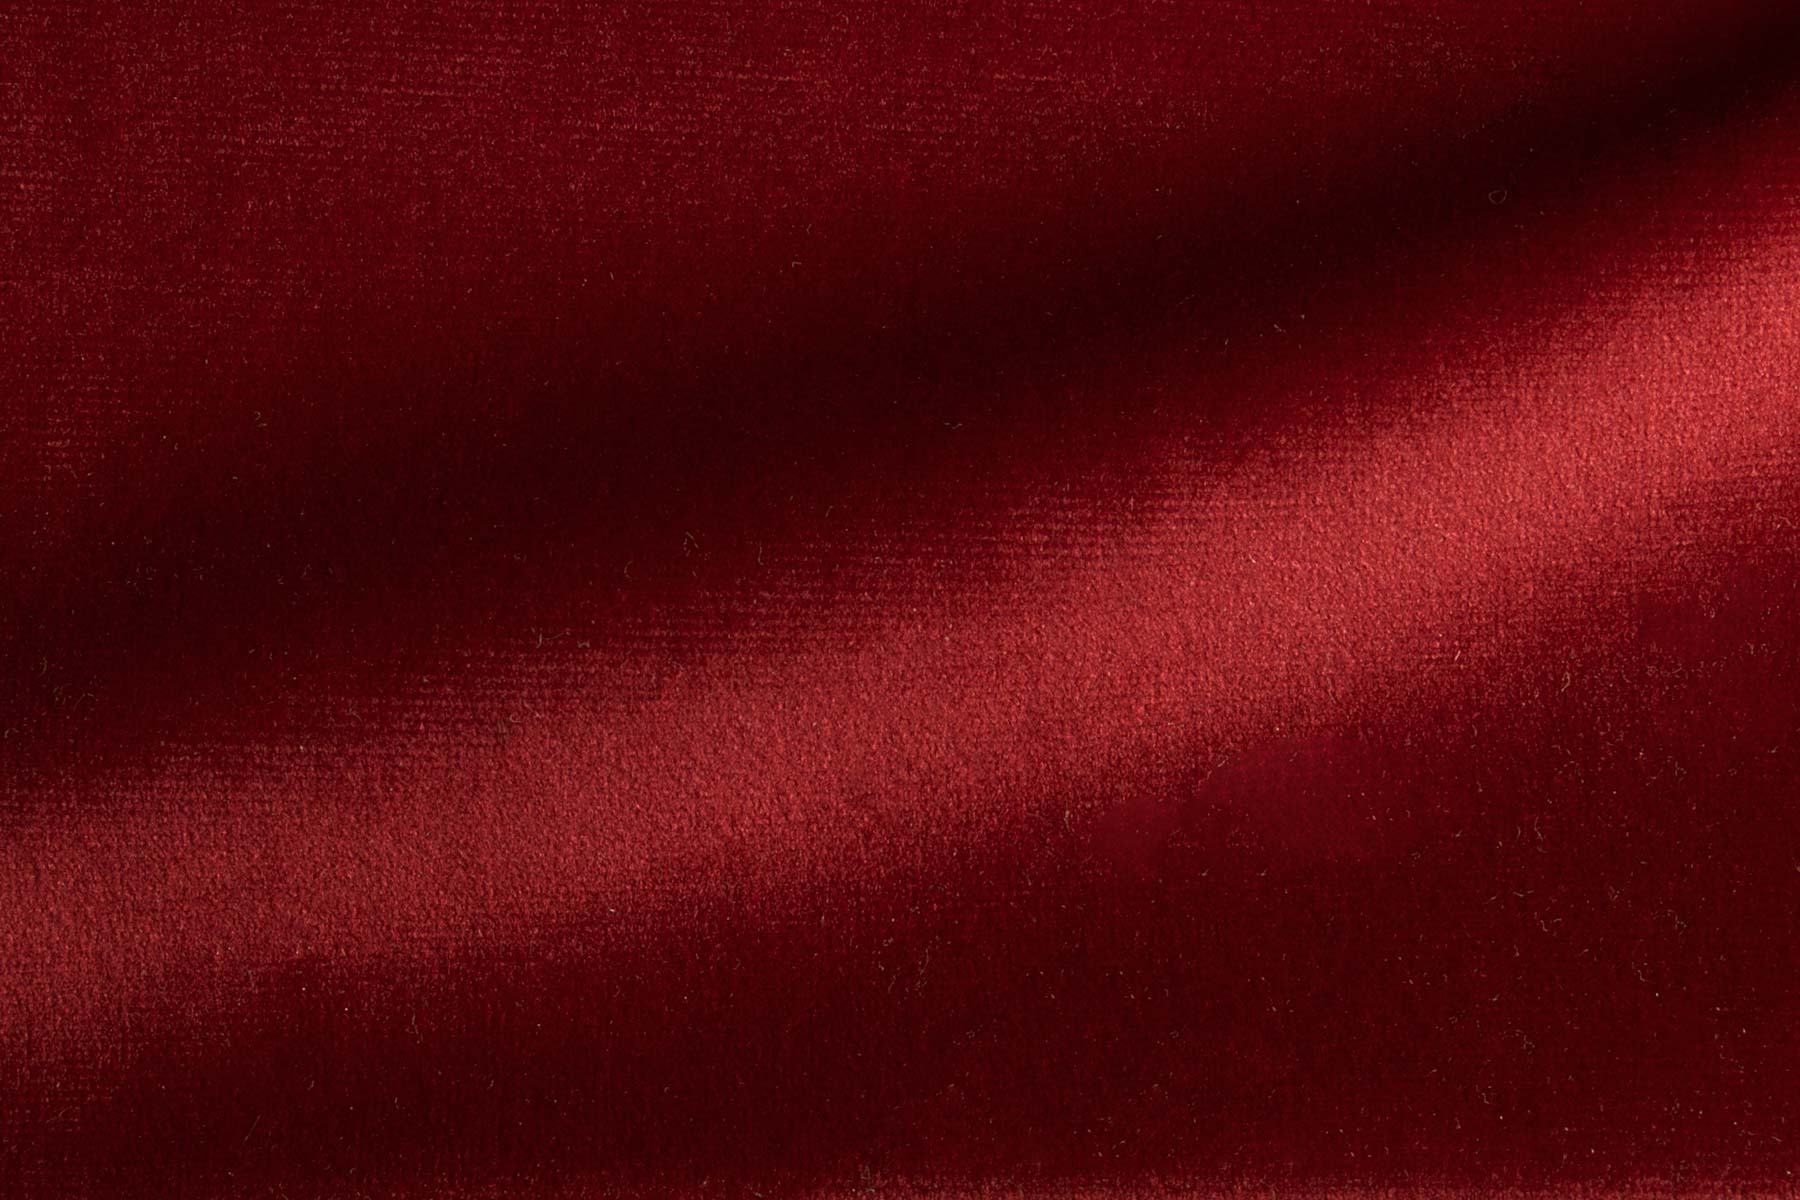 PARIS VELVET DEEP RED Fabric by KOKET